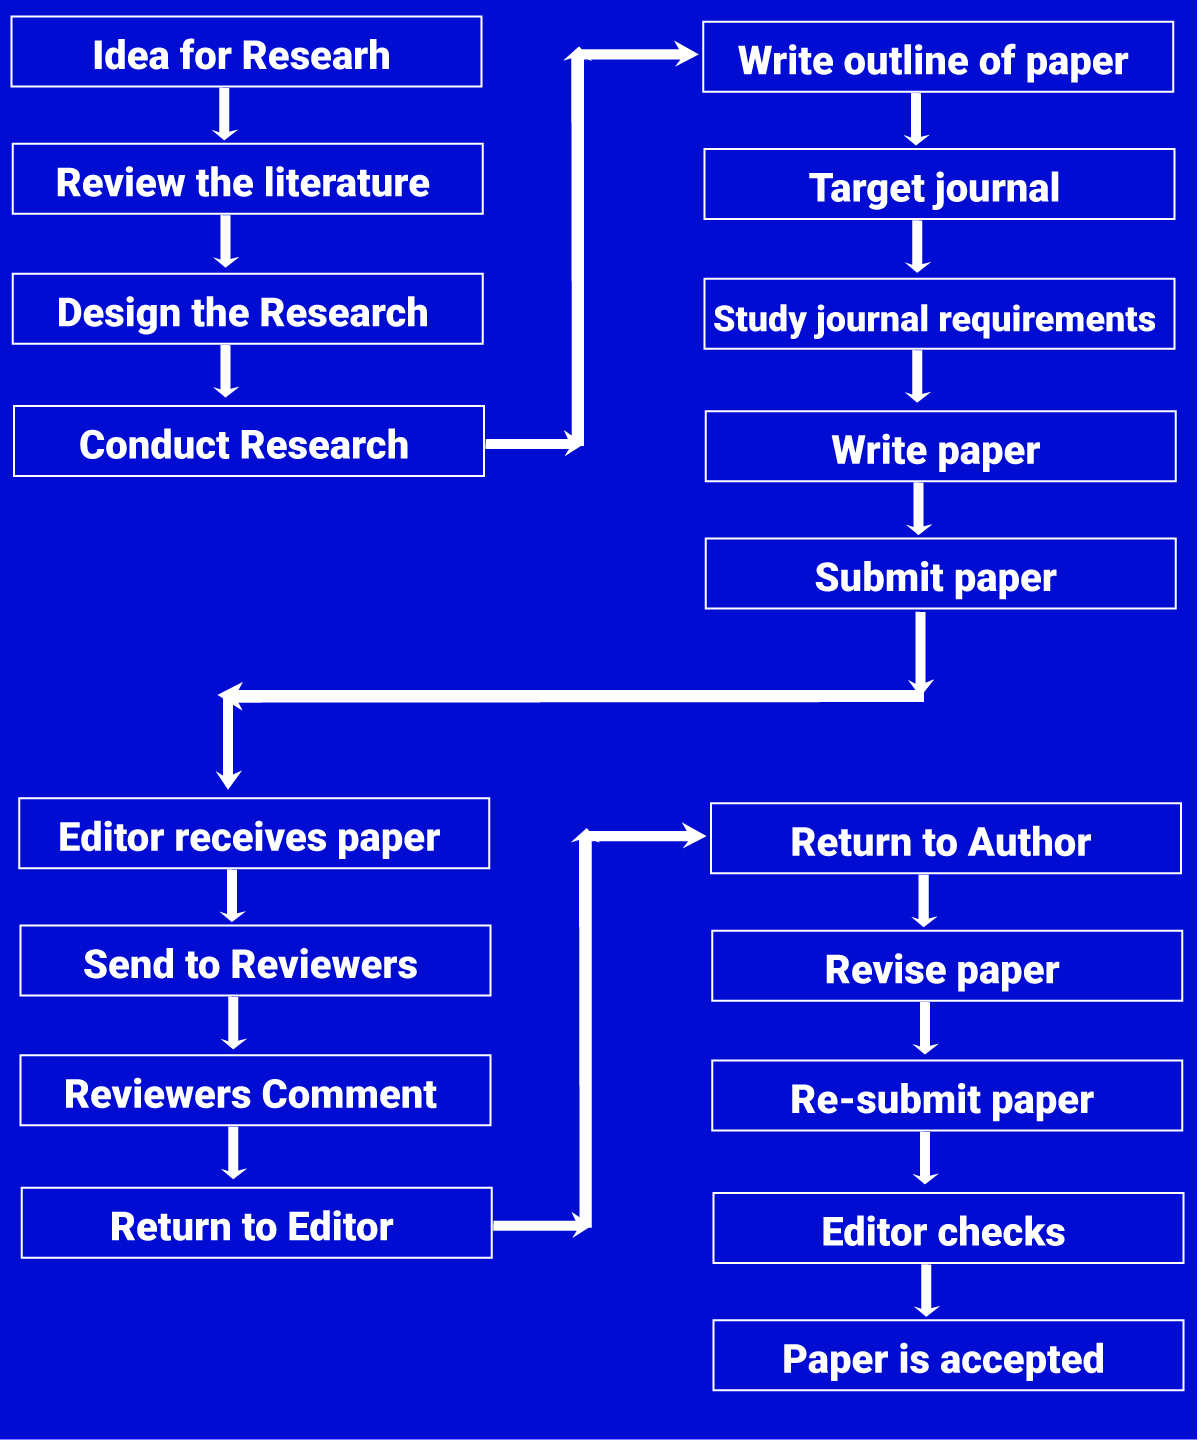 understanding the scholarly publishing process - How to Publish a Research Paper in Reputed Journals?